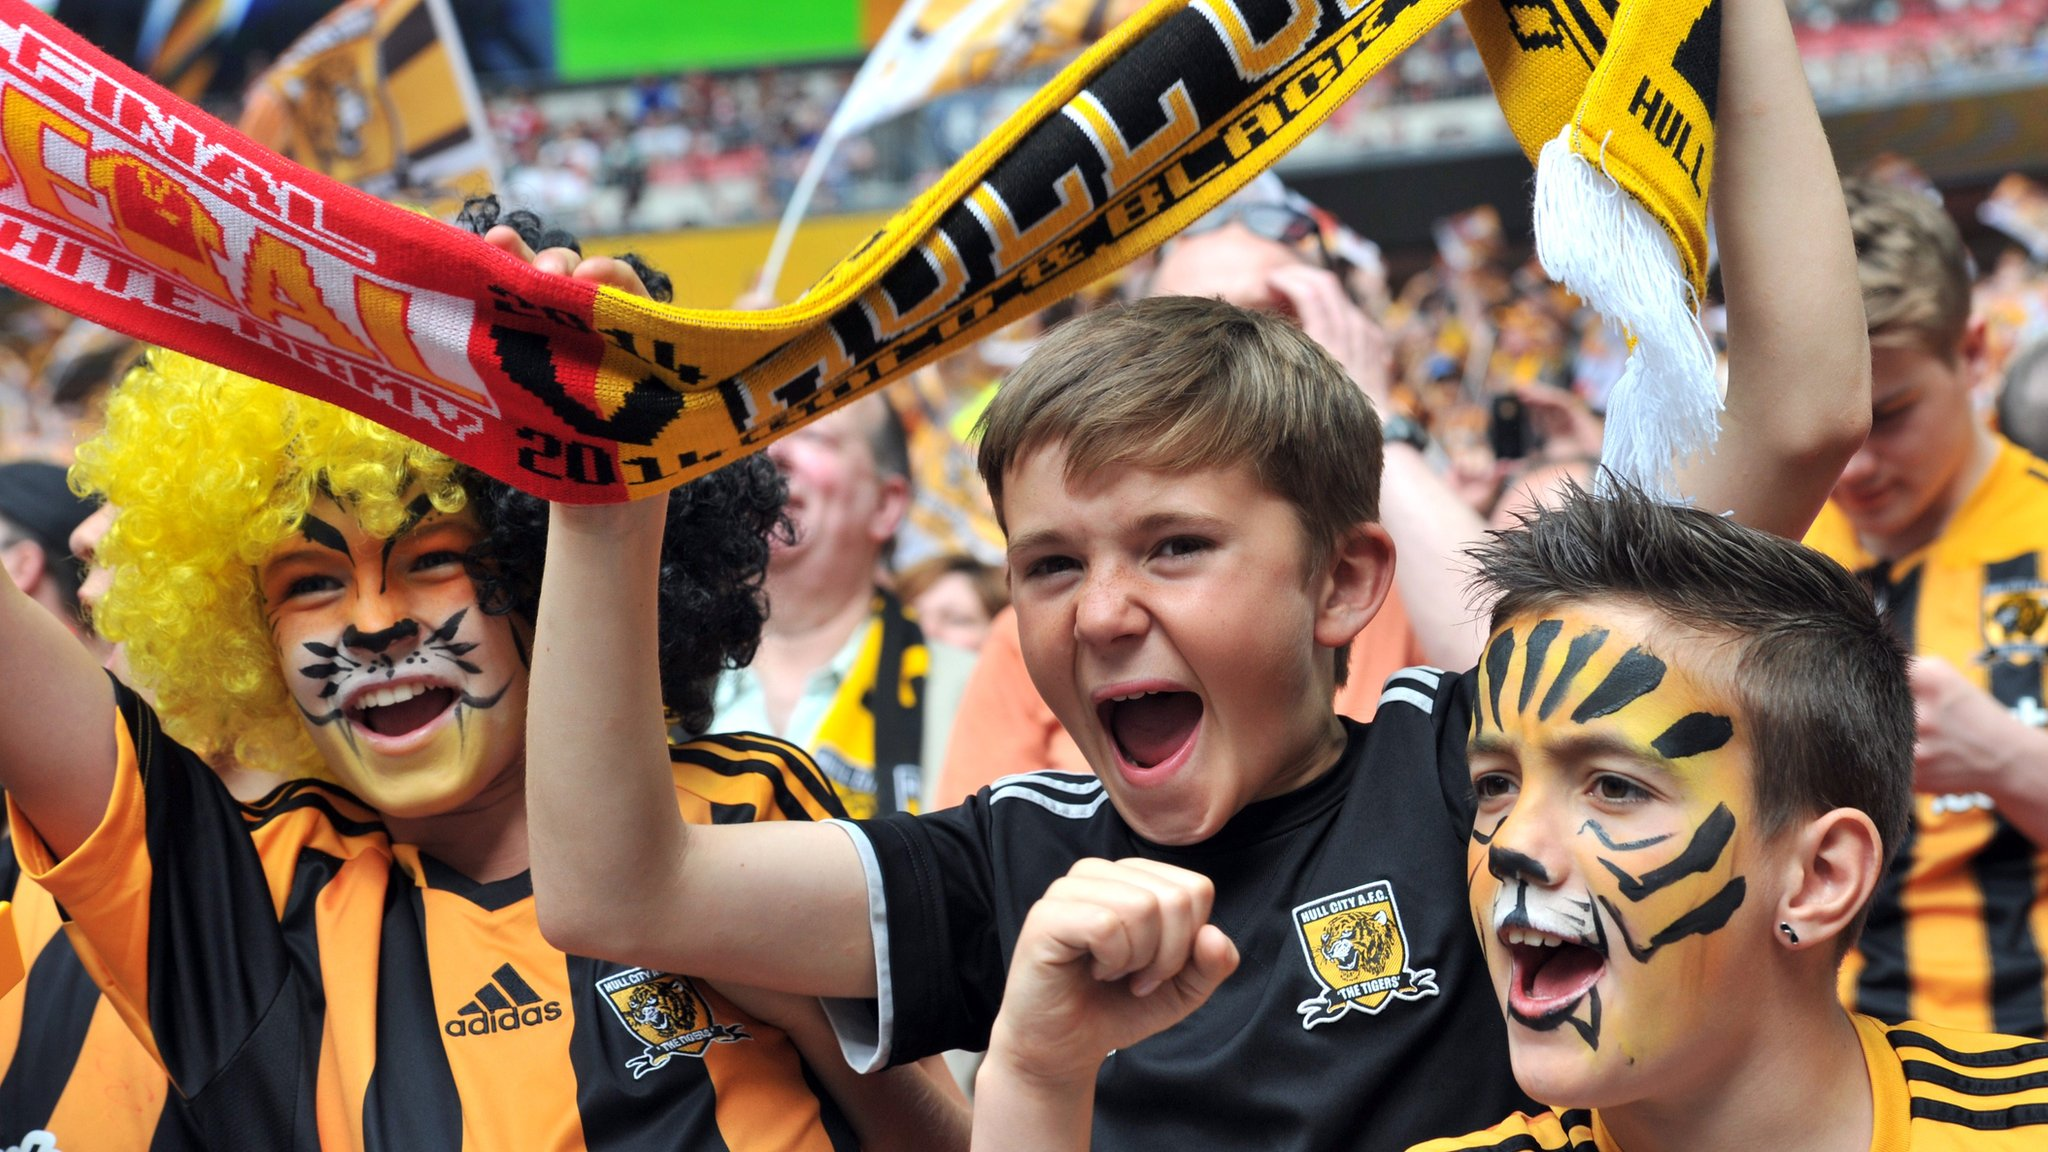 Price of Football: What do the results mean for fans, clubs & the sport?